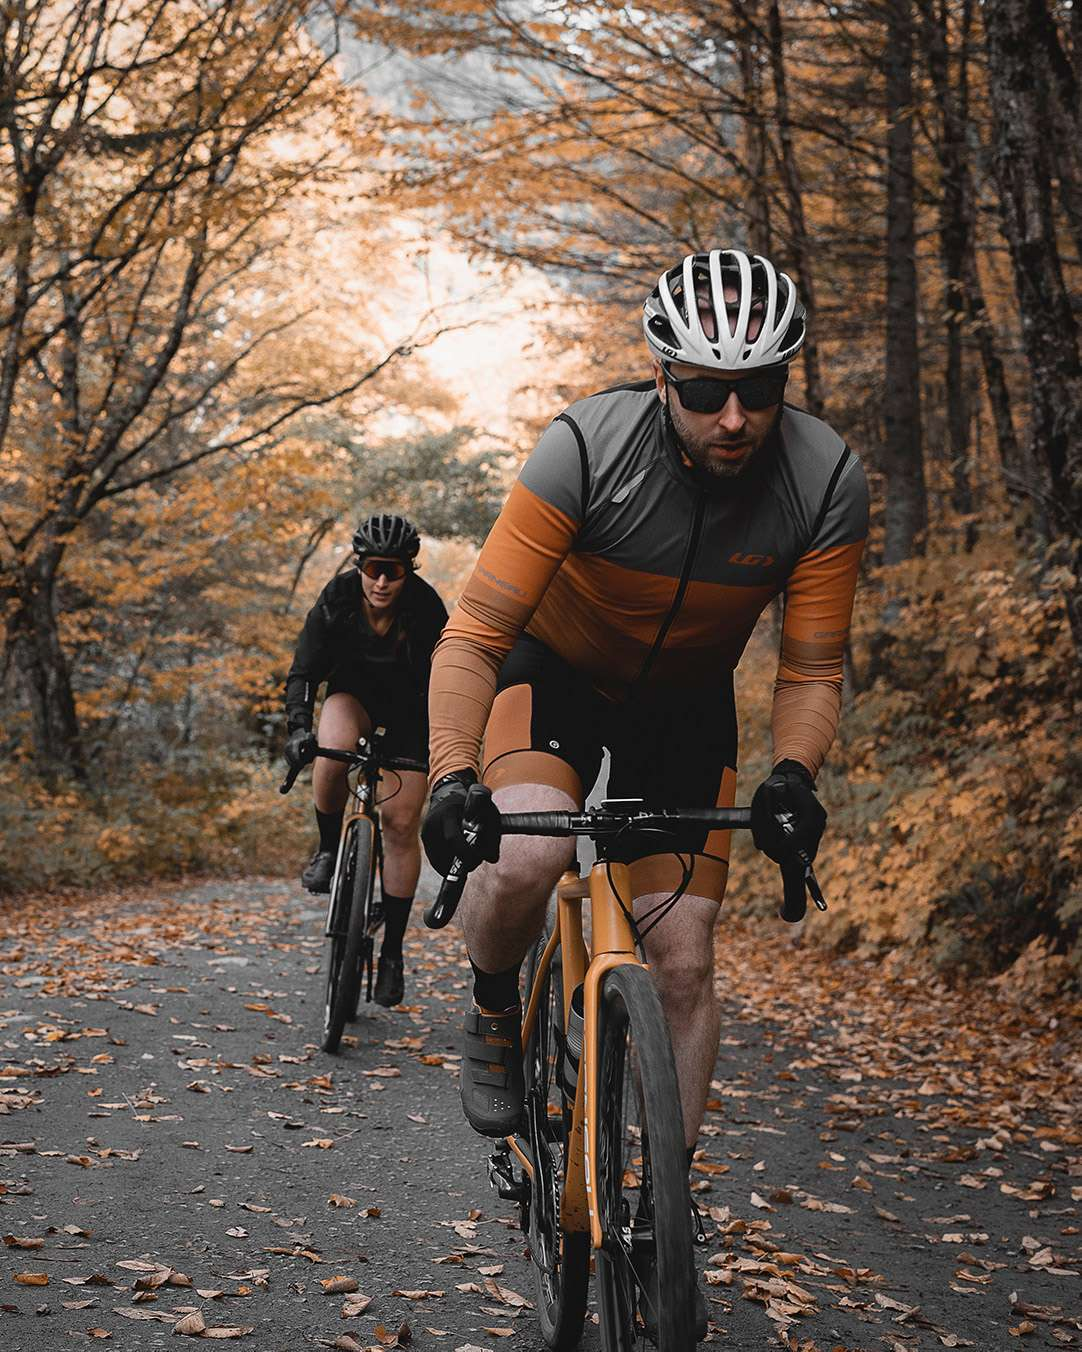 trio of long distance bikers biking on dirt road one behind the other with mountains covered in orange colored trees in the background for Spring Summer 2020 campaign of Louis Garneau with artistic direction and styling by Studio TB